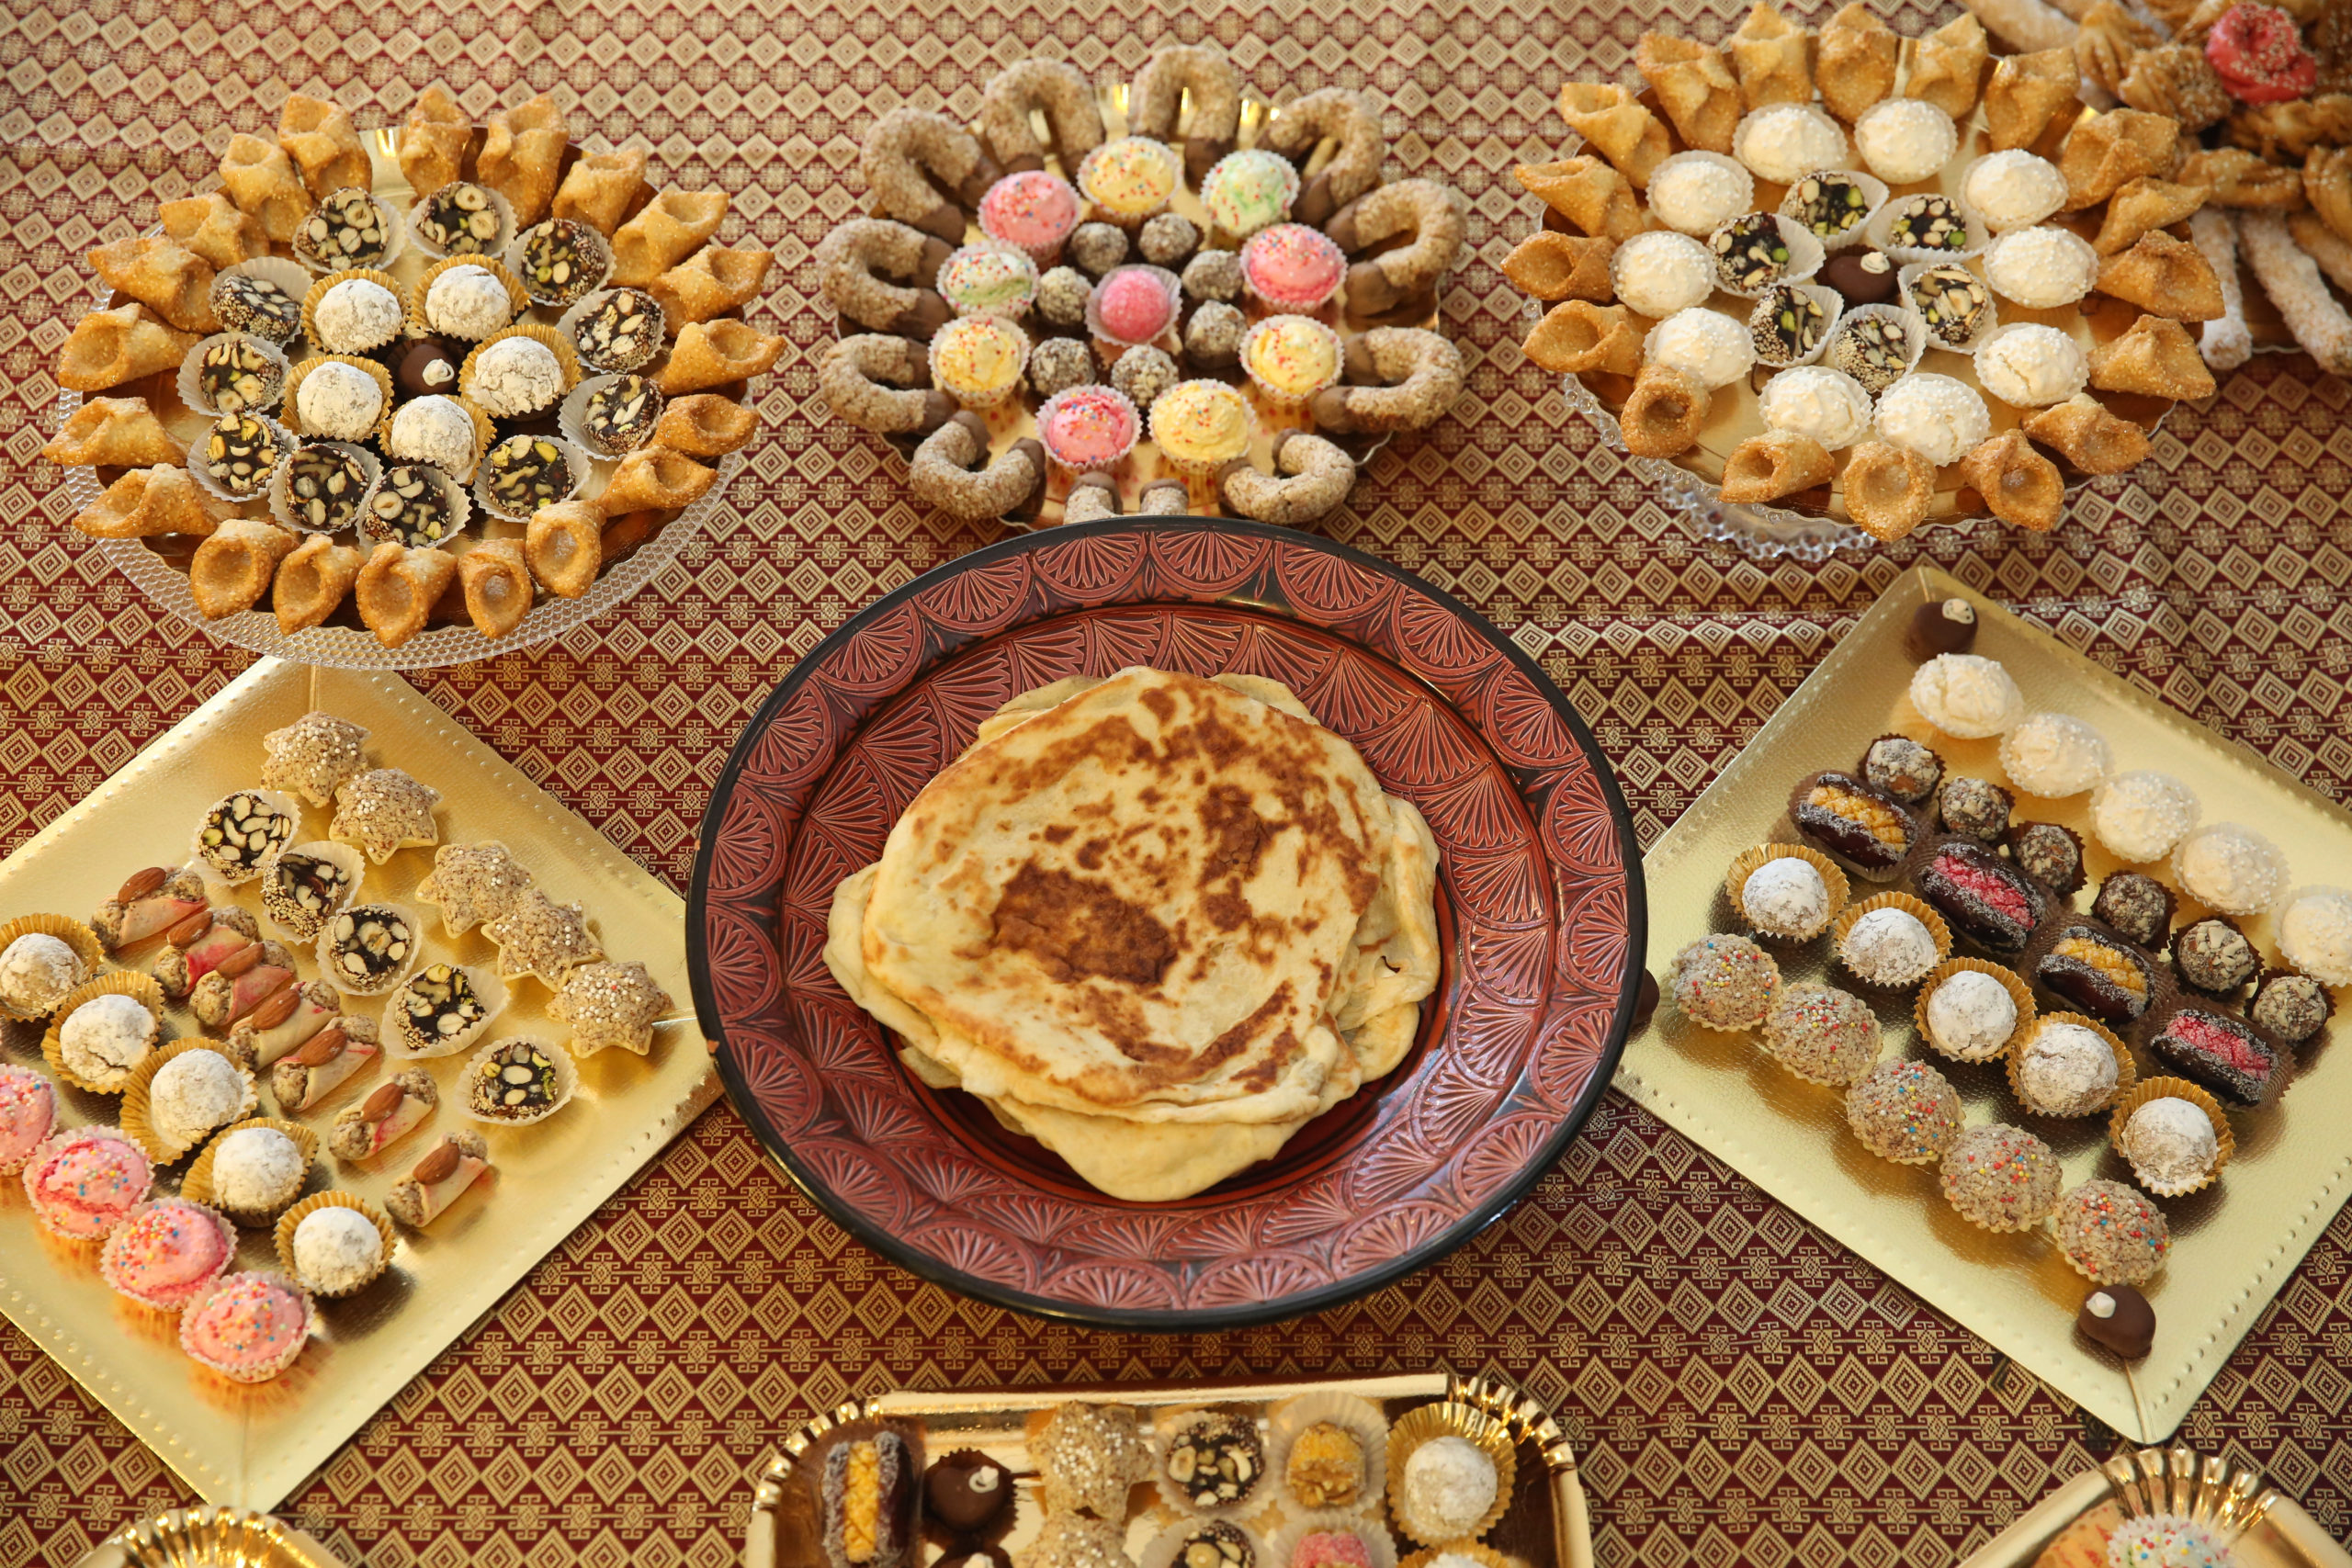 You've filled your stomach with Moroccan main courses like spicy couscous and savory tagine. Now fill your sweet tooth with these Moroccan desserts!